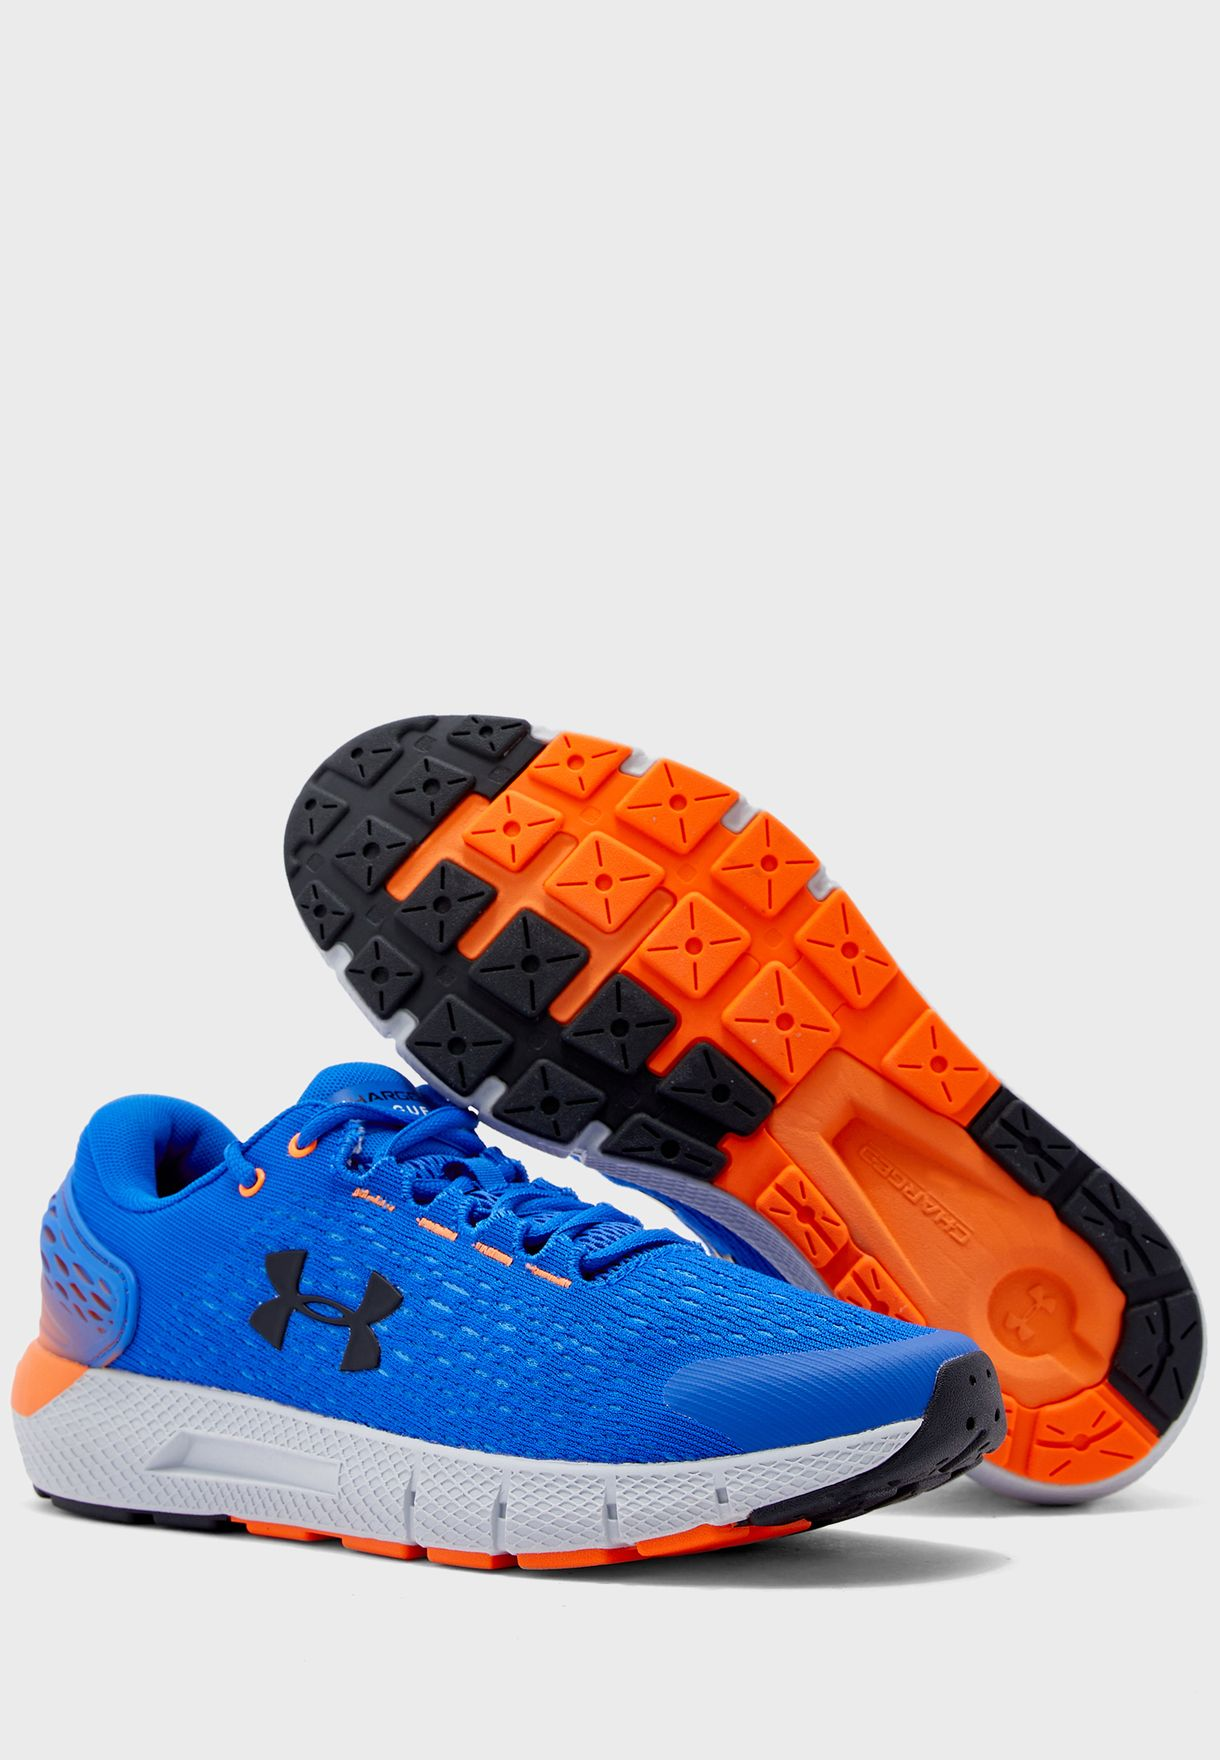 UA Under Armour Charged Rogue 2 Mens Running Shoes 3022592-401 Trainers Blue